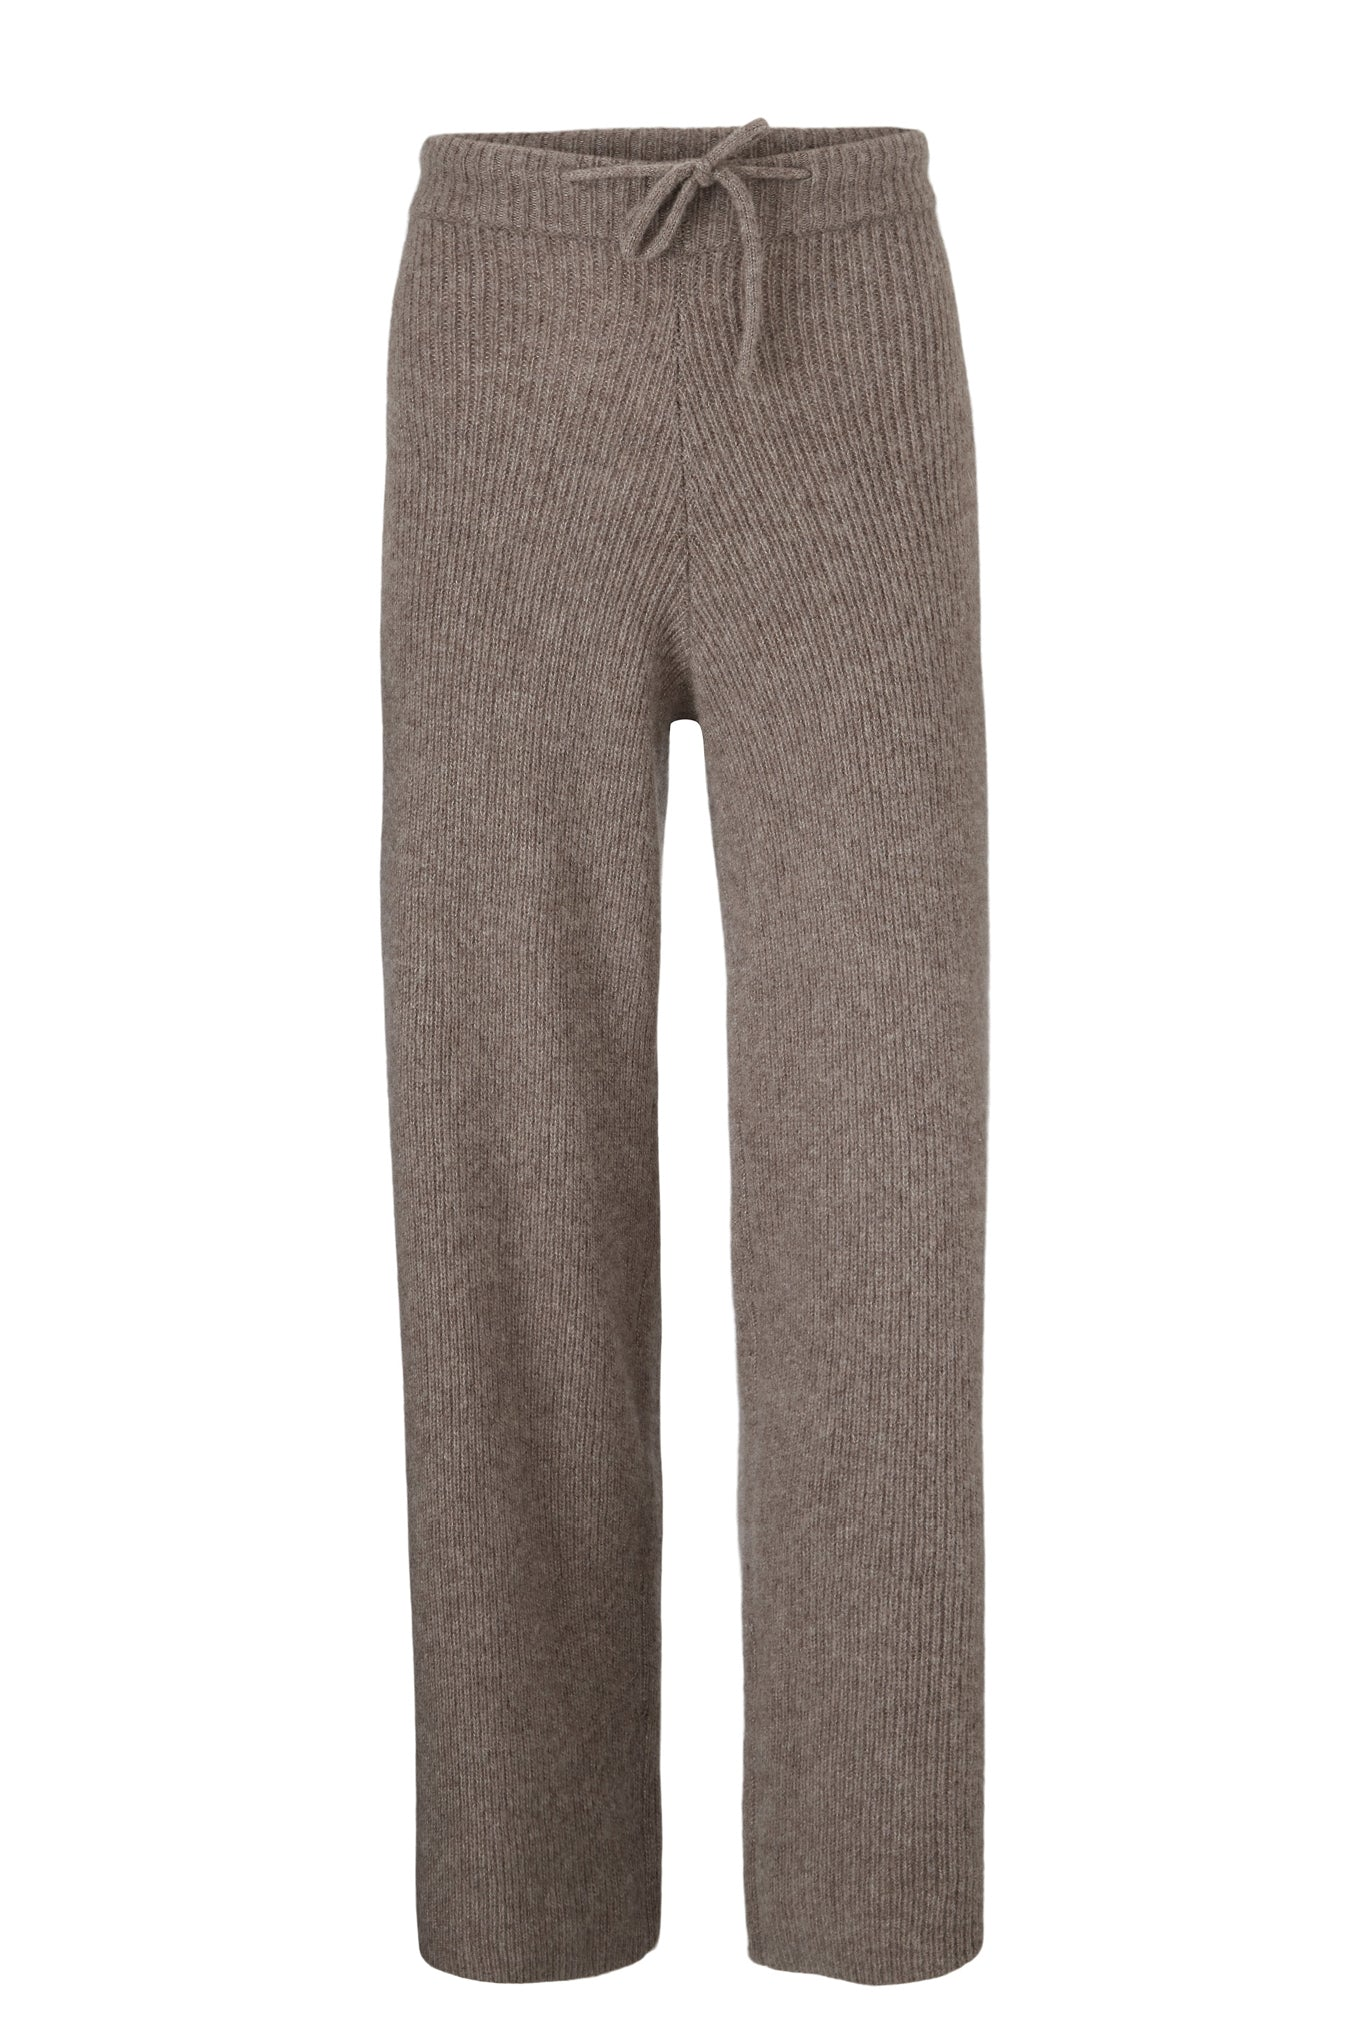 Zigga Knit Pants - Hazelnut - Silk/Cashmere